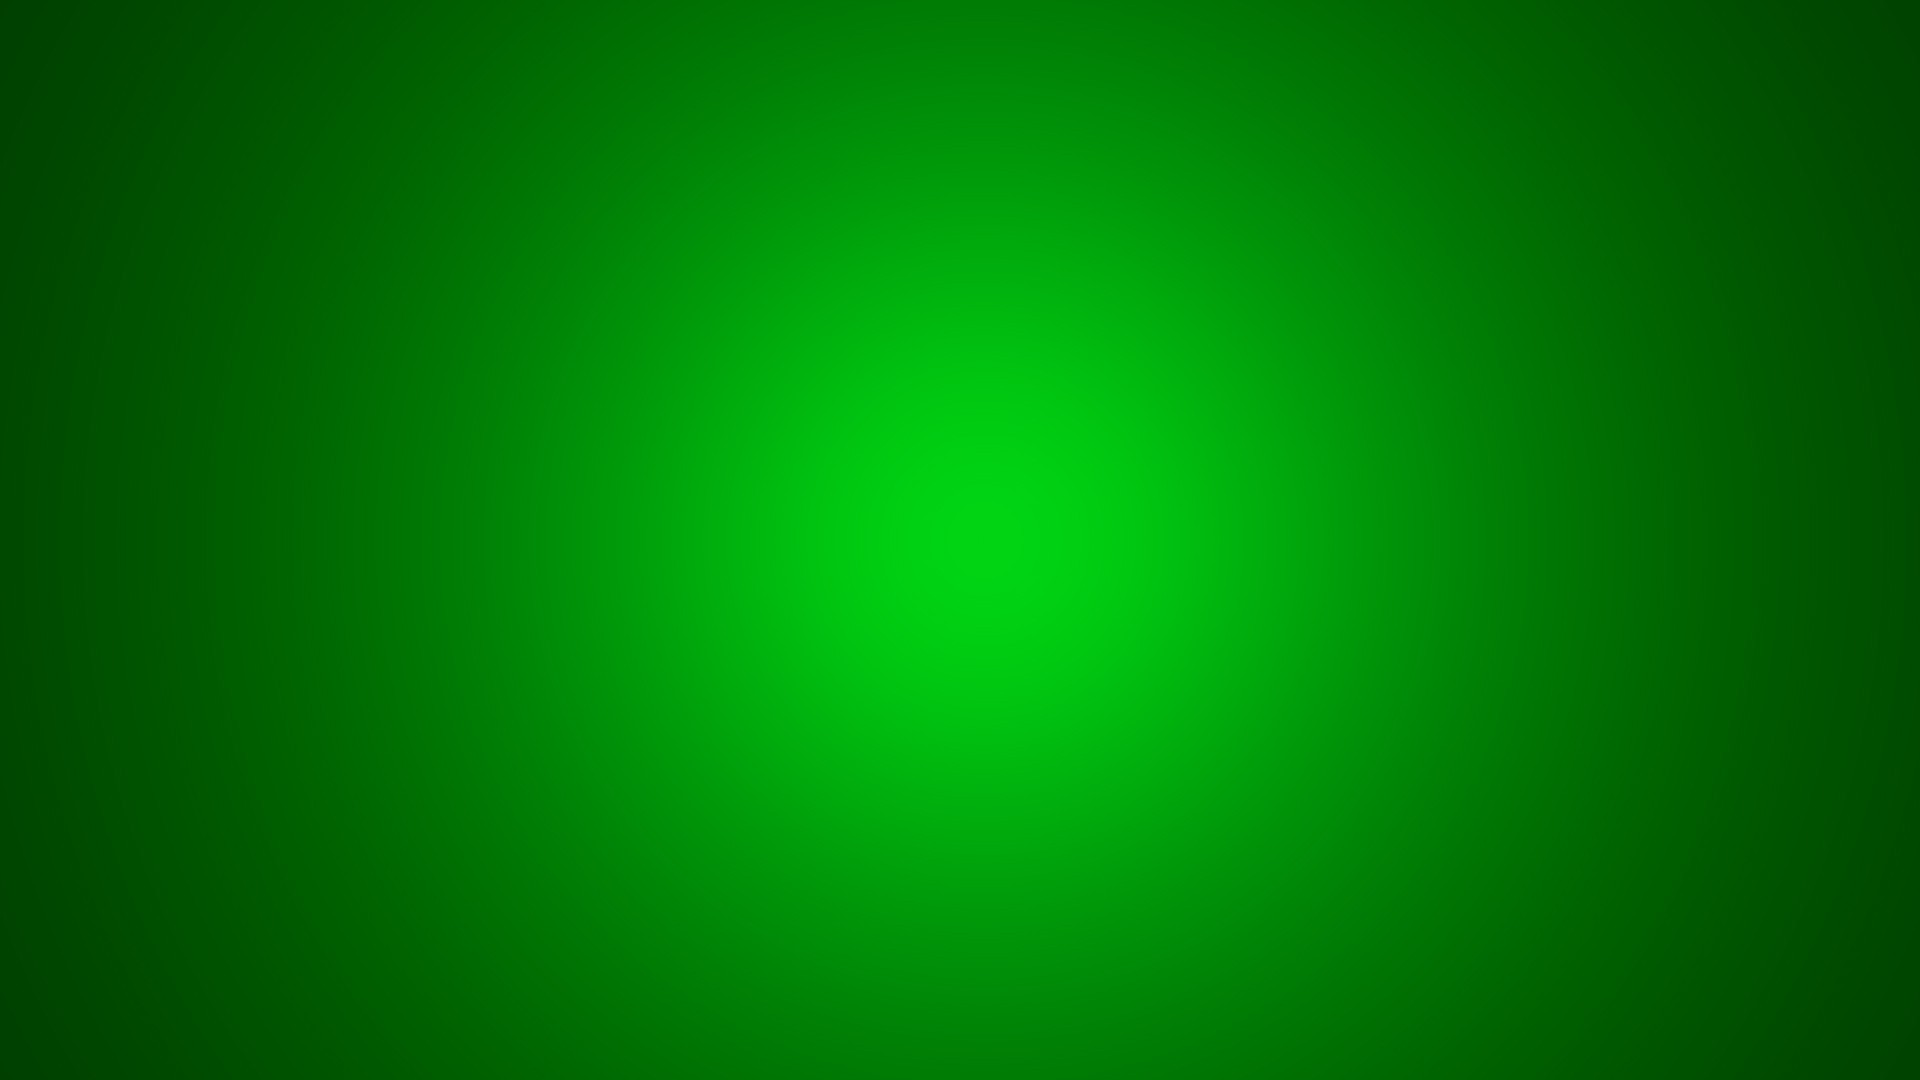 Green Backgrounds Wallpapers Wallpaper